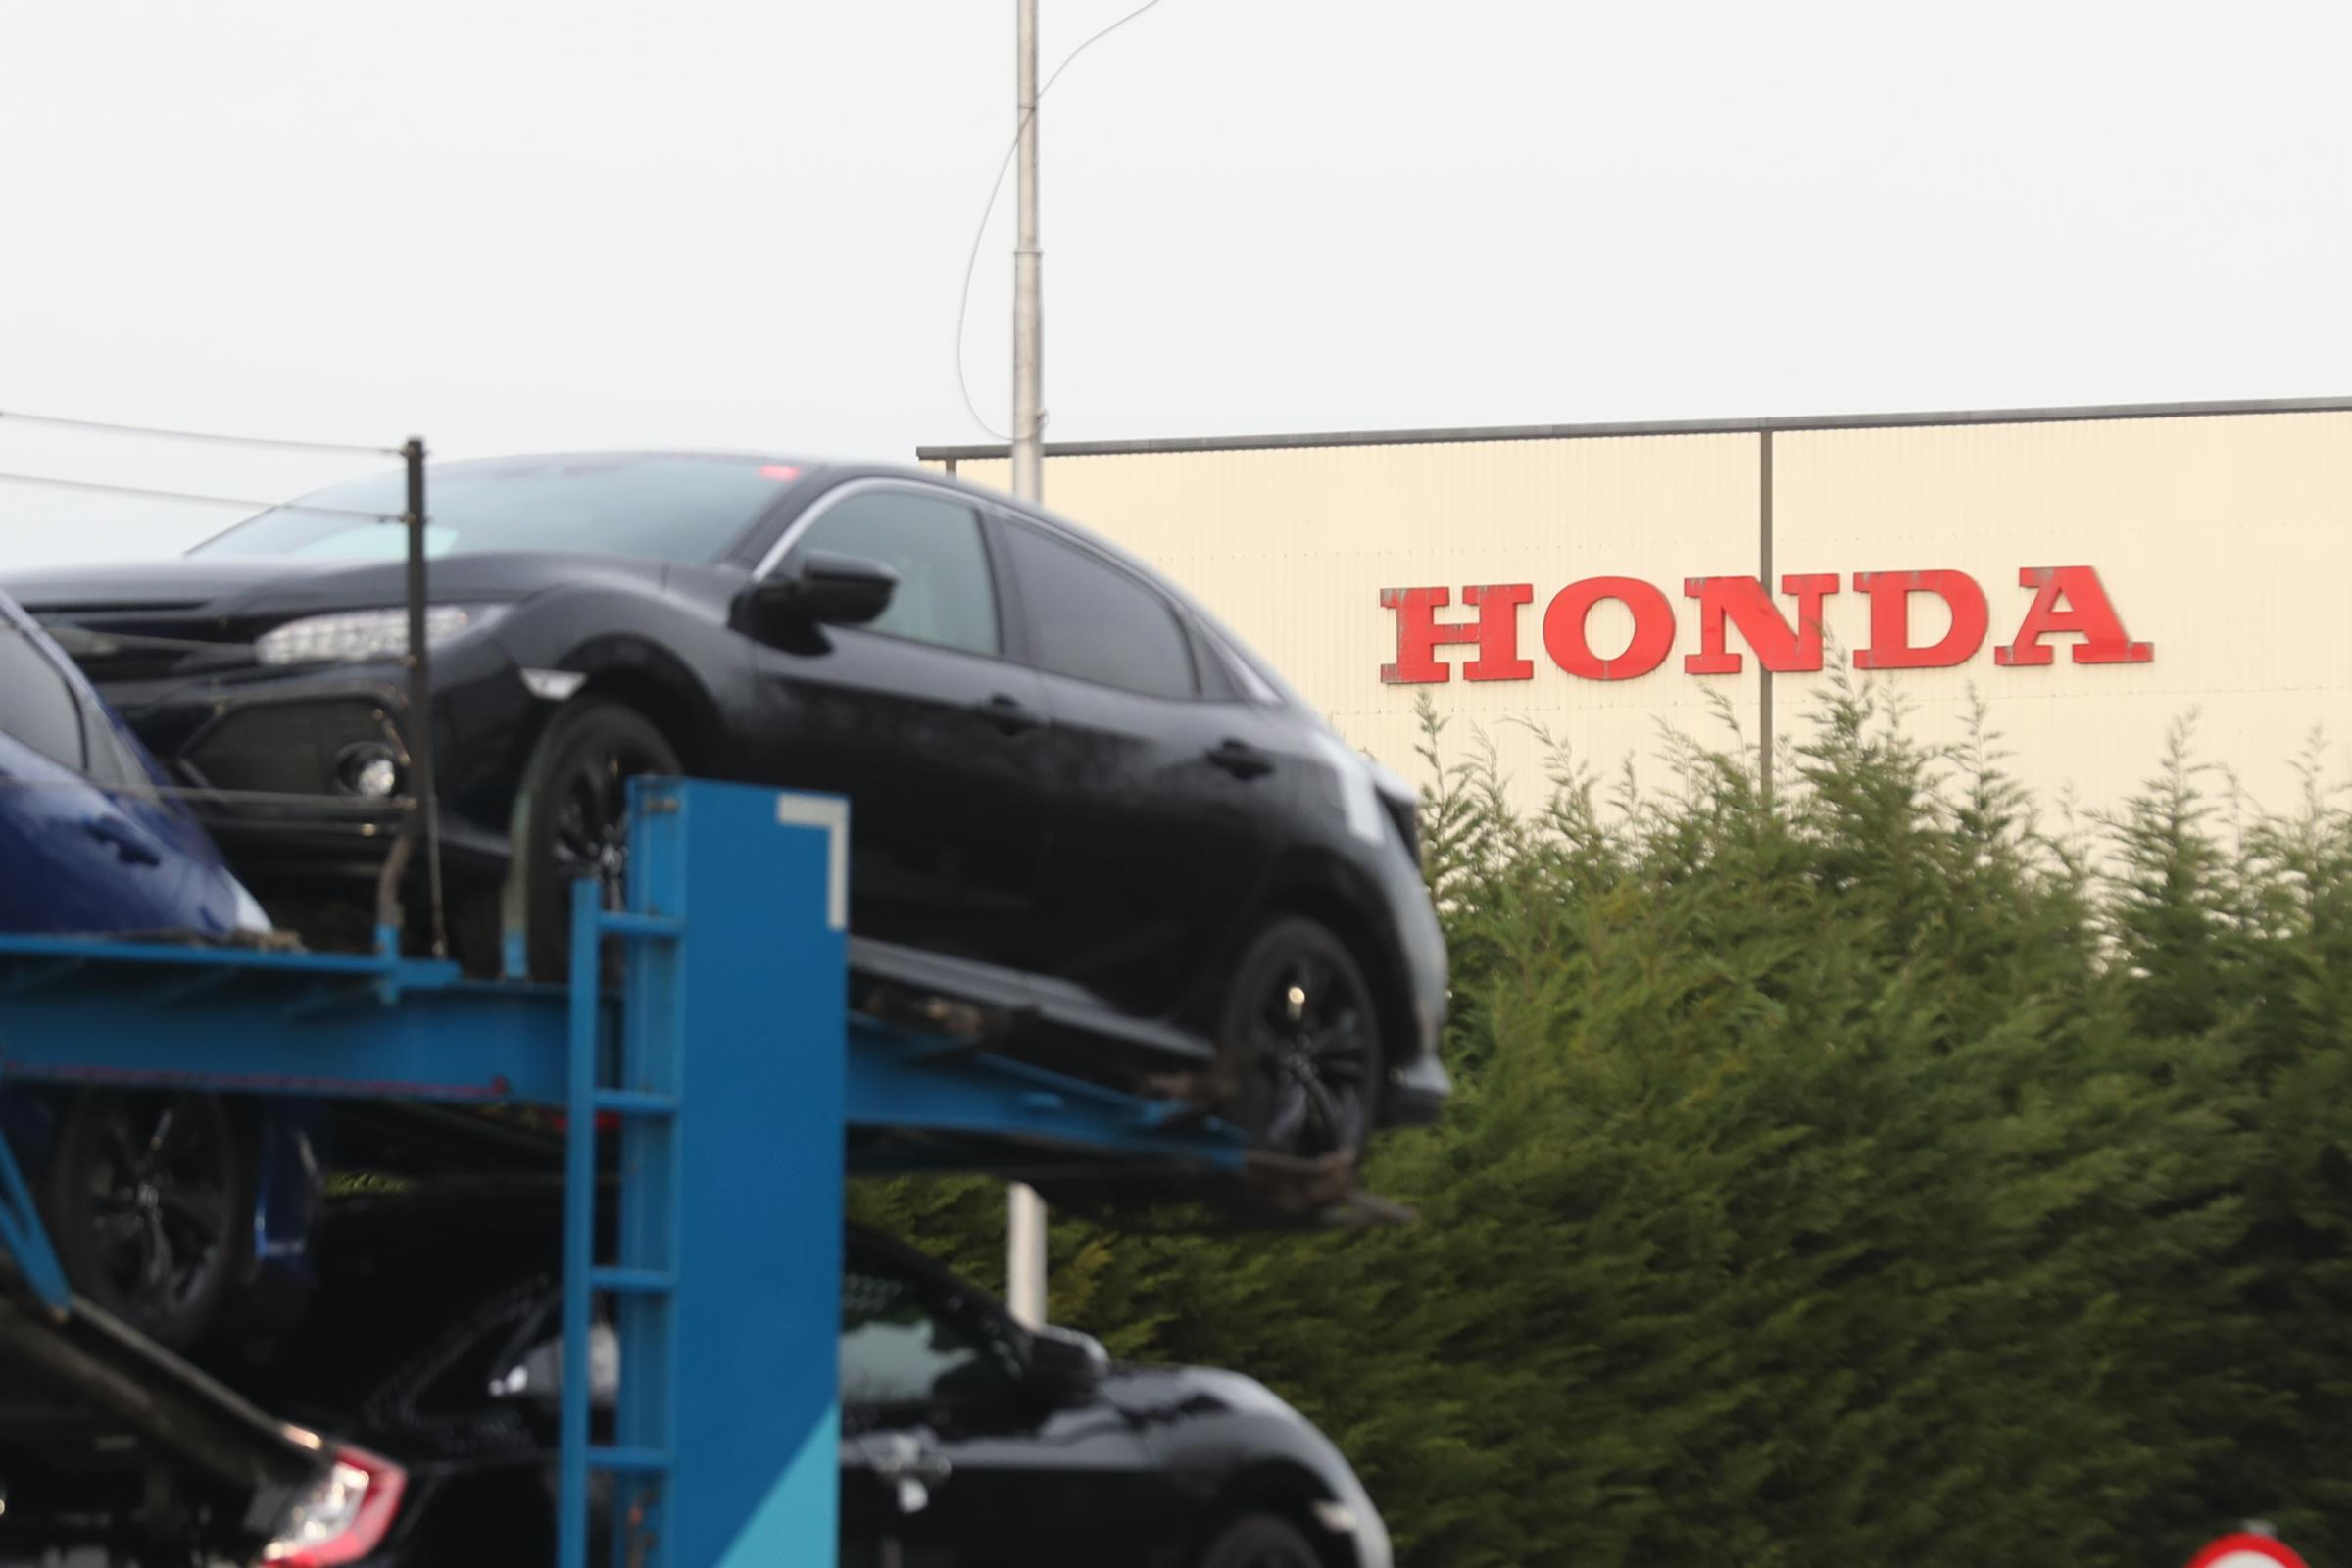 A car transporter at the Honda plant in Swindon, which the company is planning to close with the loss of more than 3,000 jobs. PRESS ASSOCIATION Photo. Picture date: Monday February 18, 2019. Honda was the first major Japanese car company to get involved